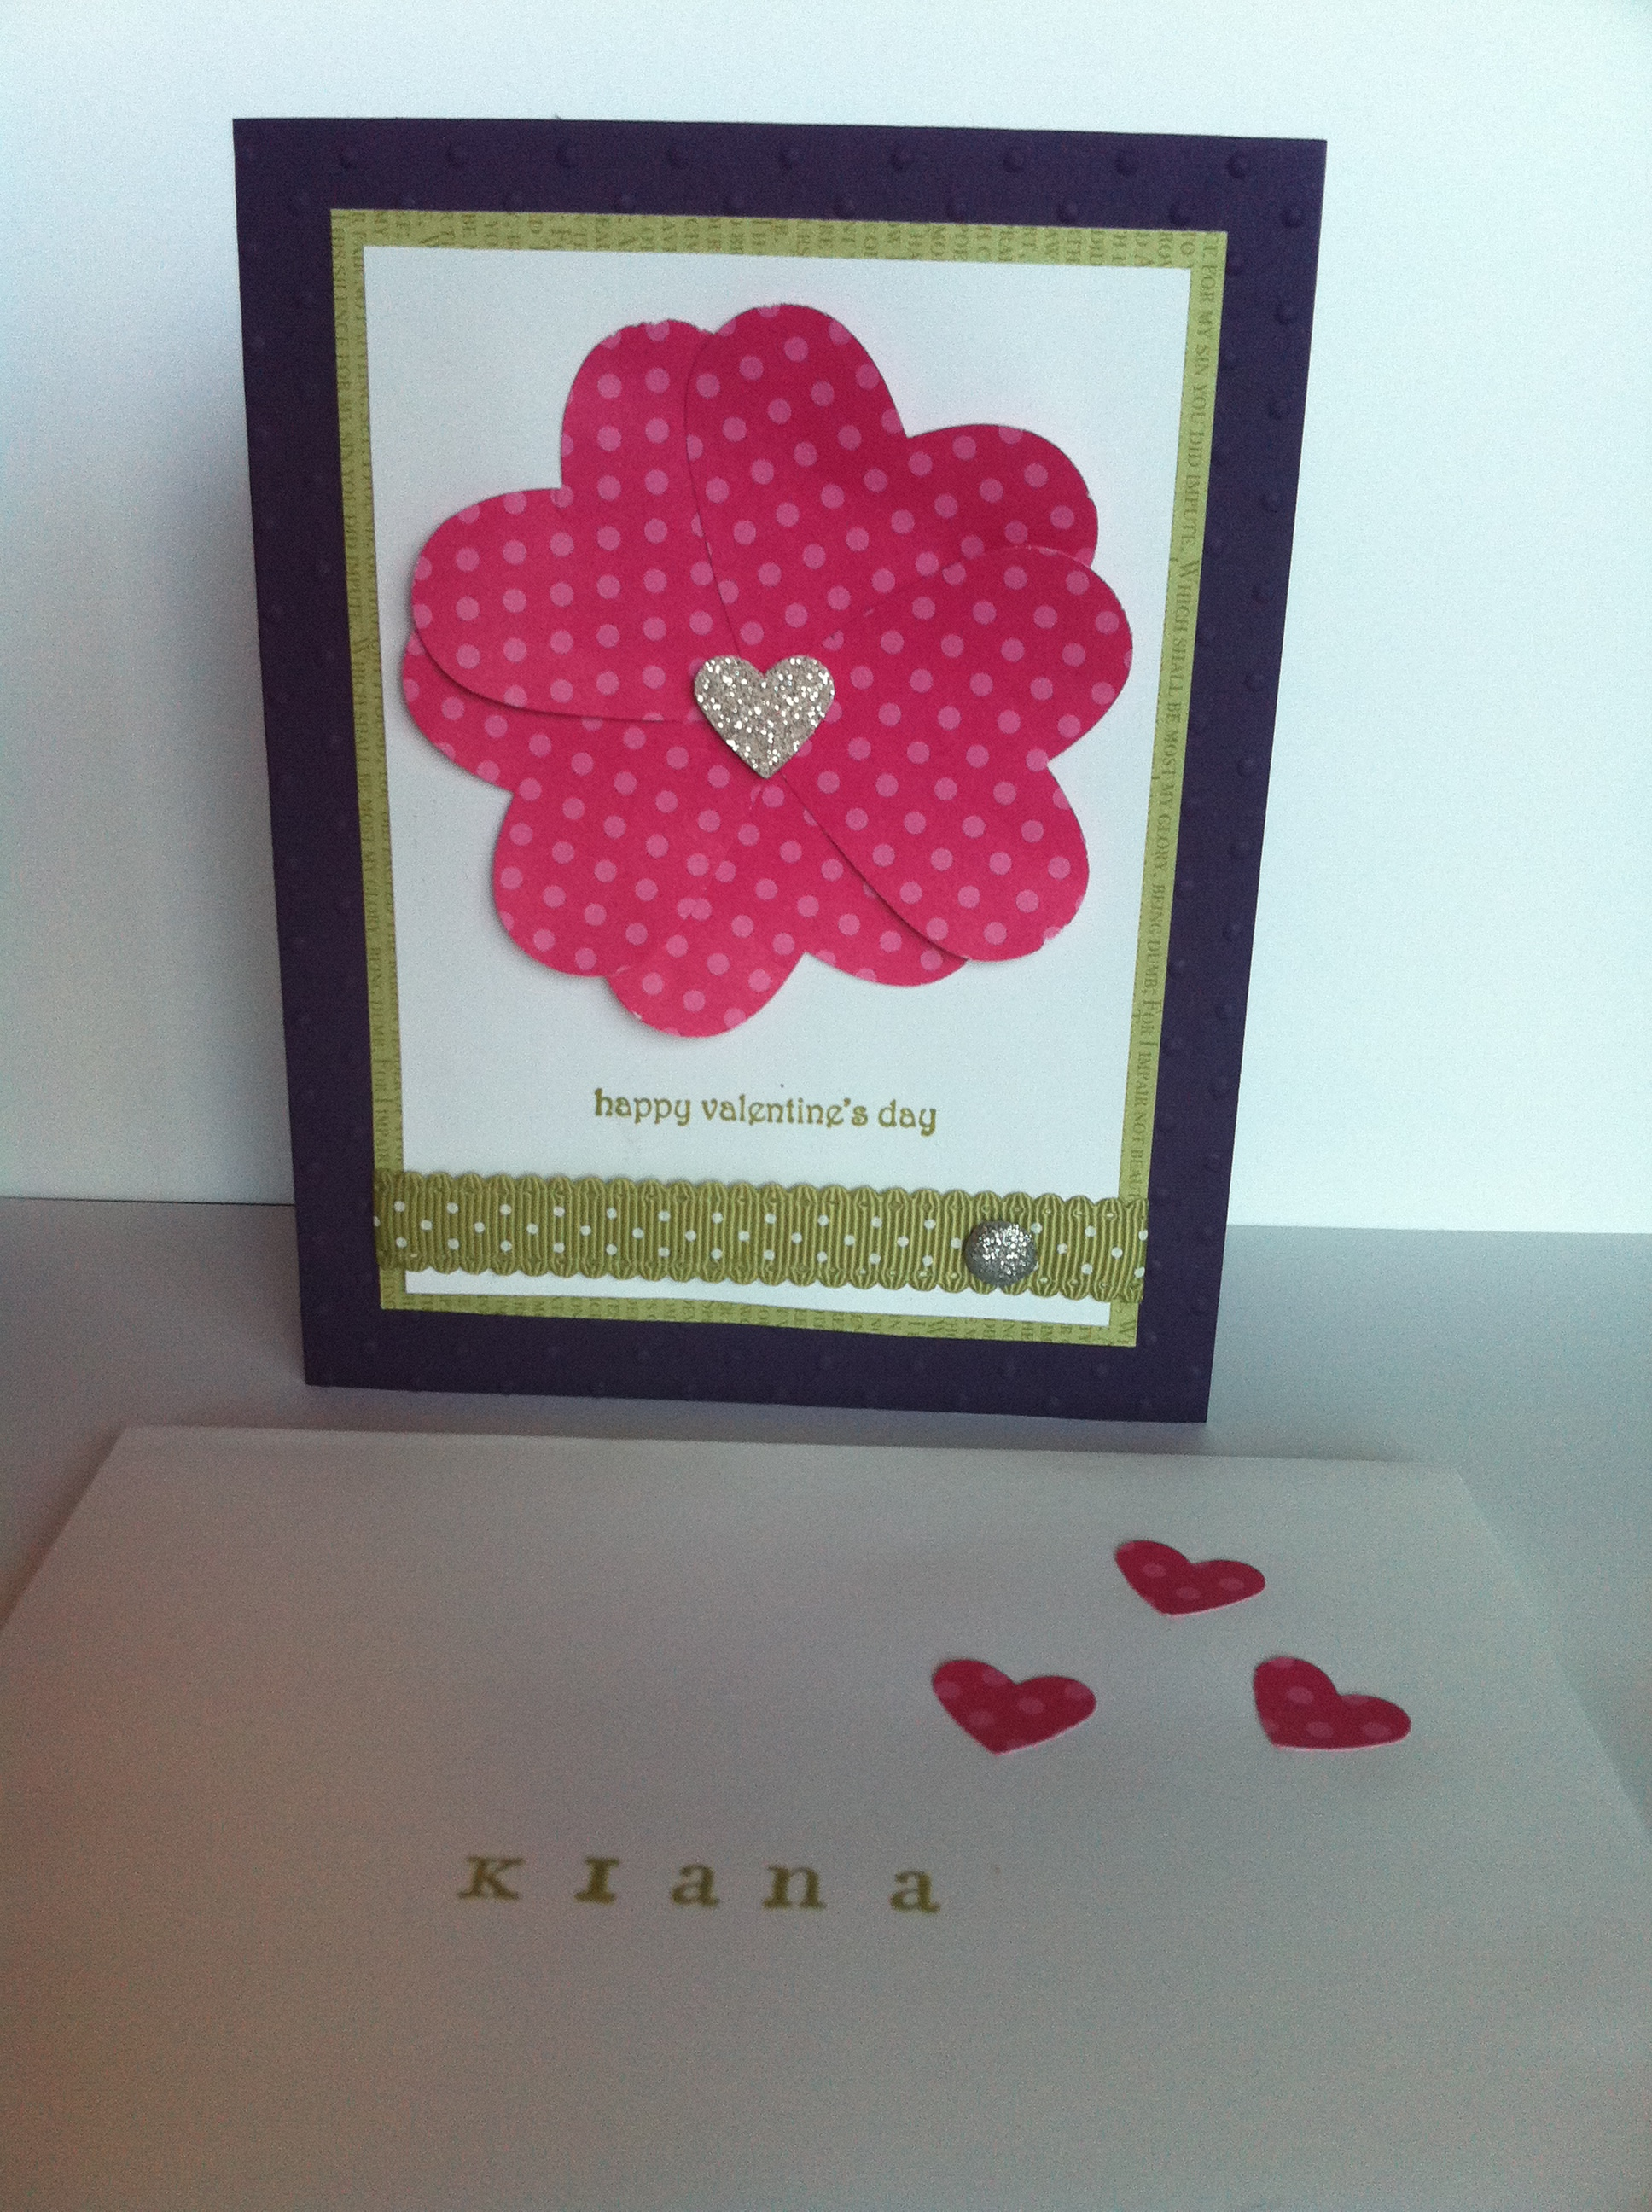 Handmade Cards Hearts Heart Flower Glimmer Card With